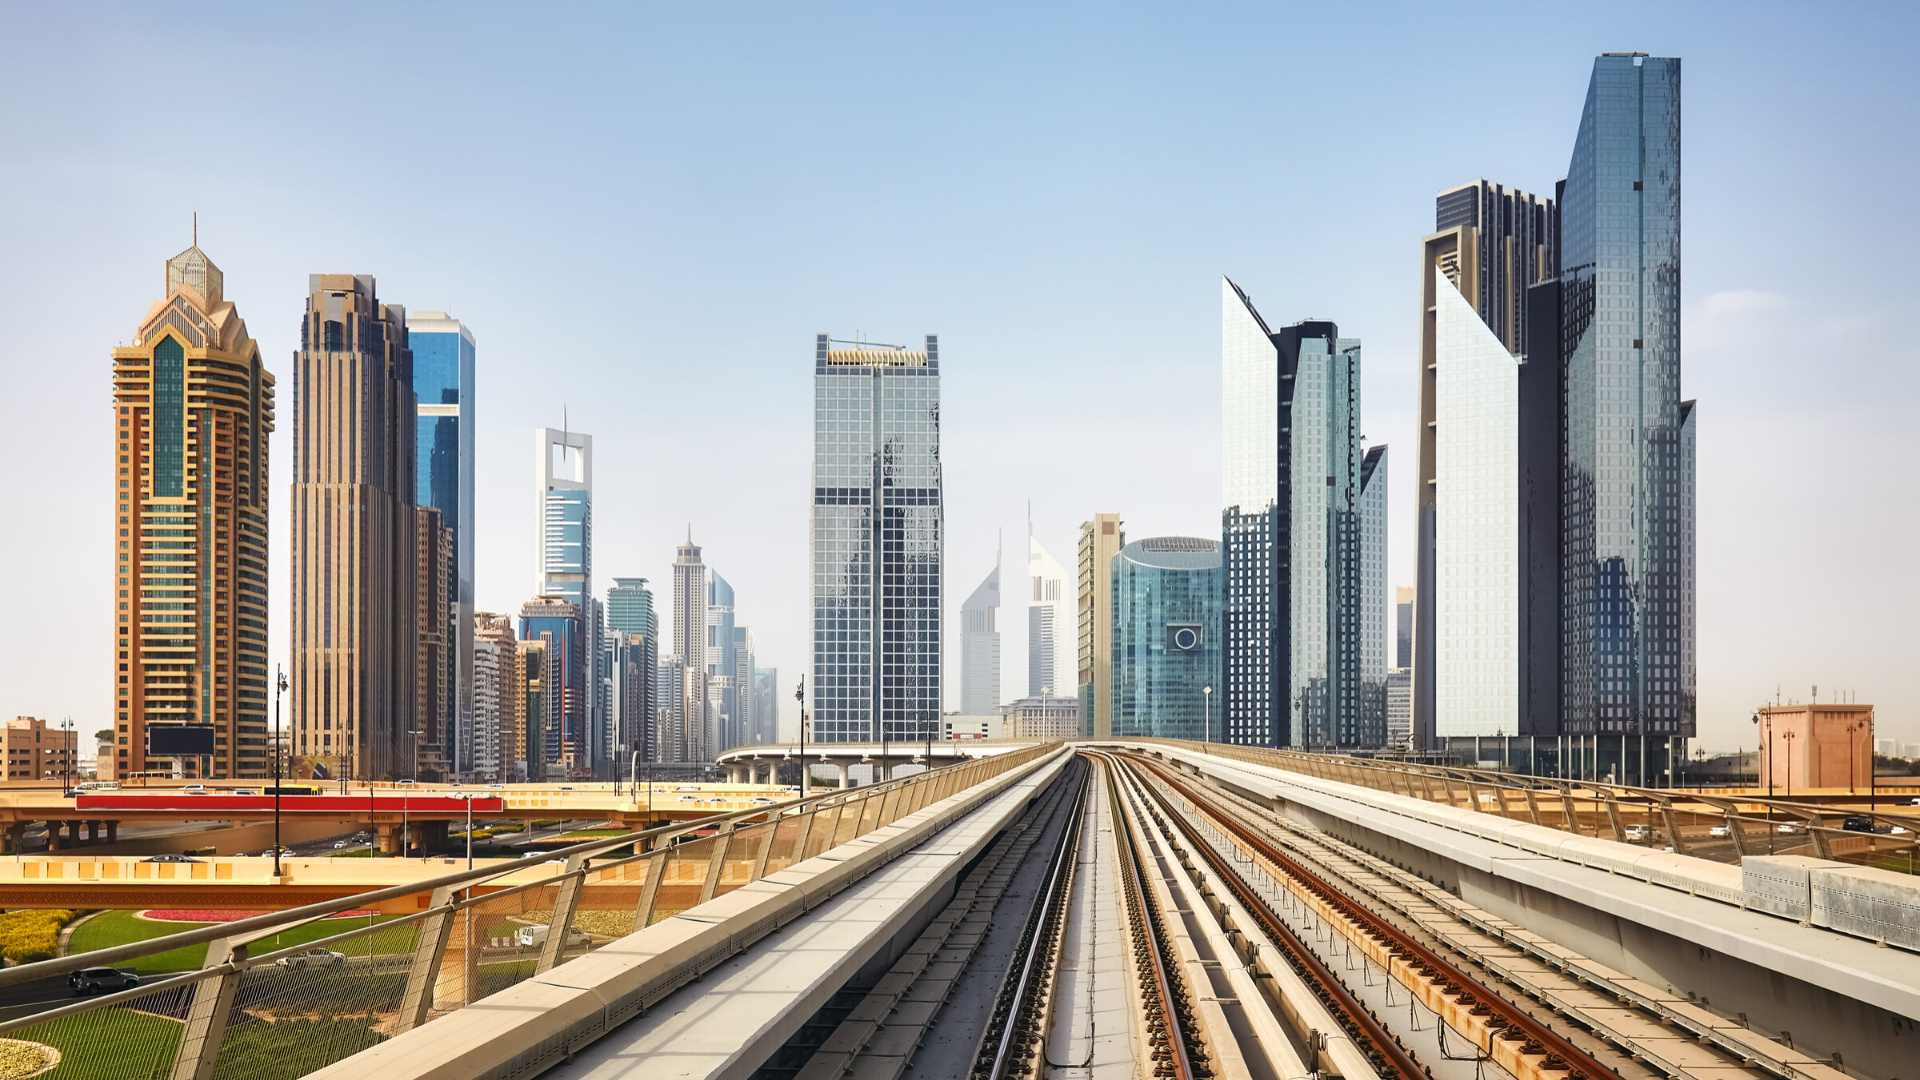 Company Formation - Key considerations when forming a business in Dubai